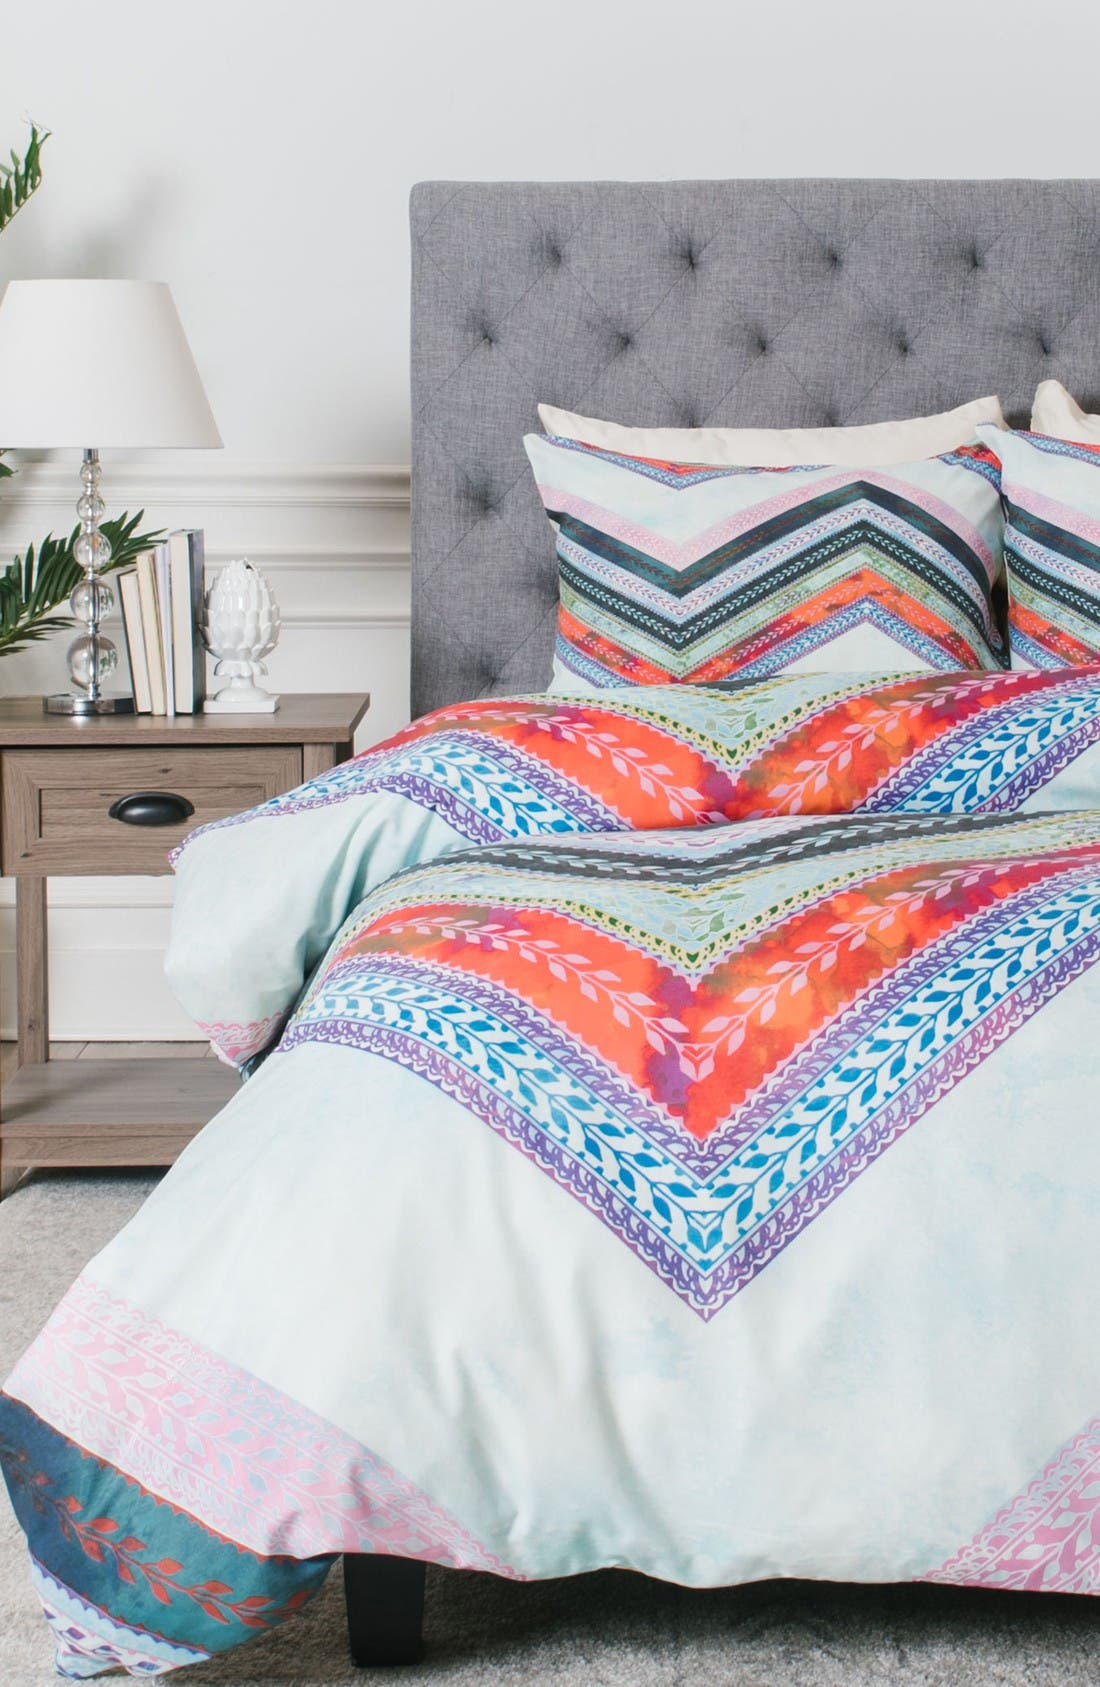 Main Image - Deny Designs Boho Chevron Duvet Cover & Sham Set